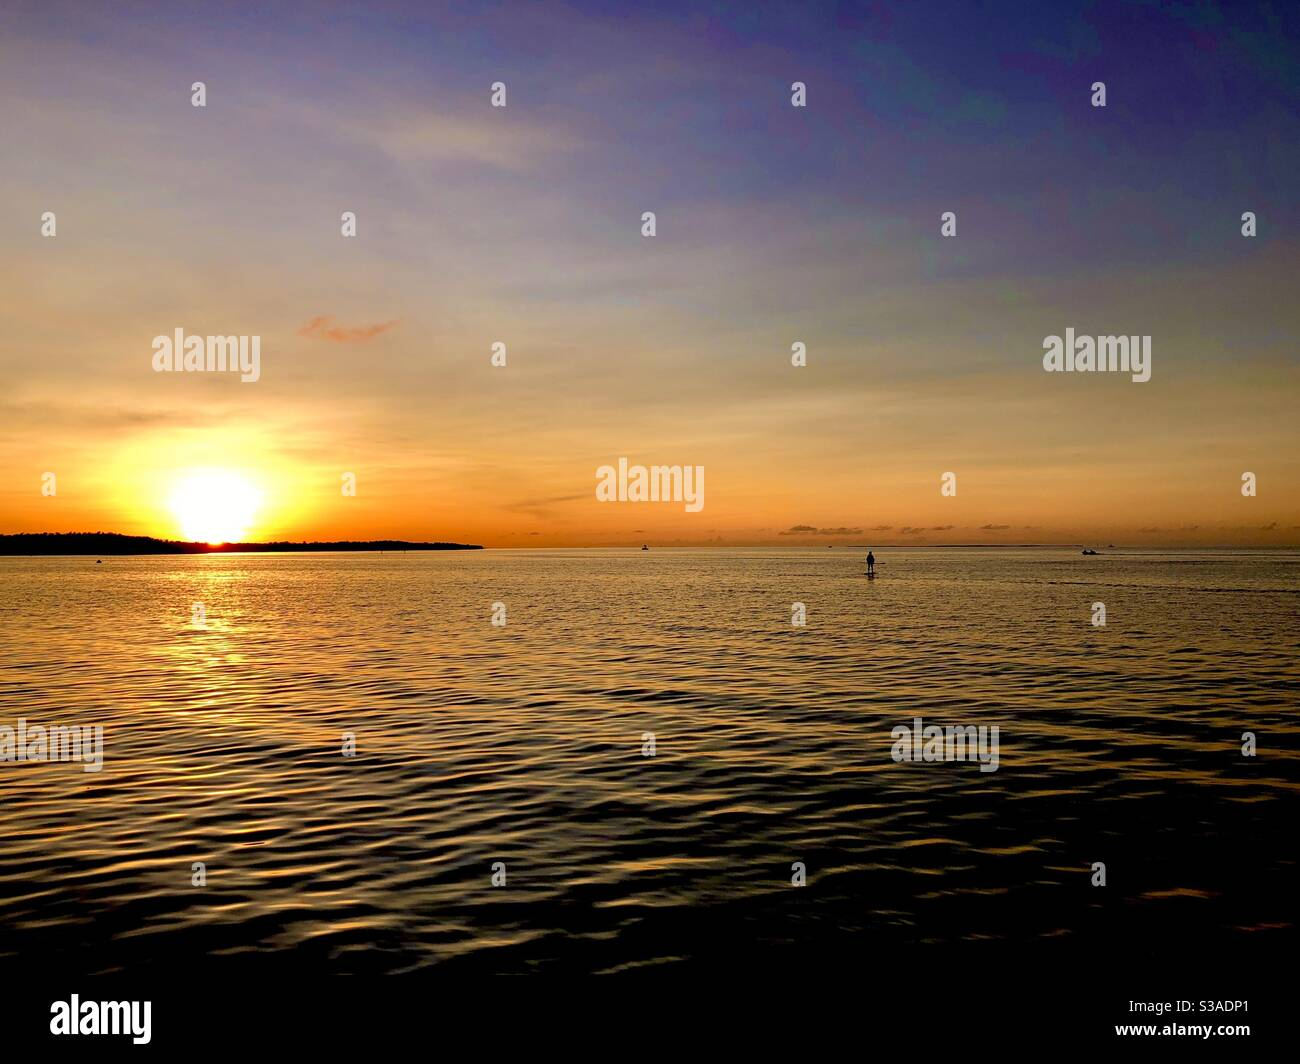 Serene and peaceful scene of a paddle boarder on the Bayside as the sun sets in Key Largo, Florida Stock Photo